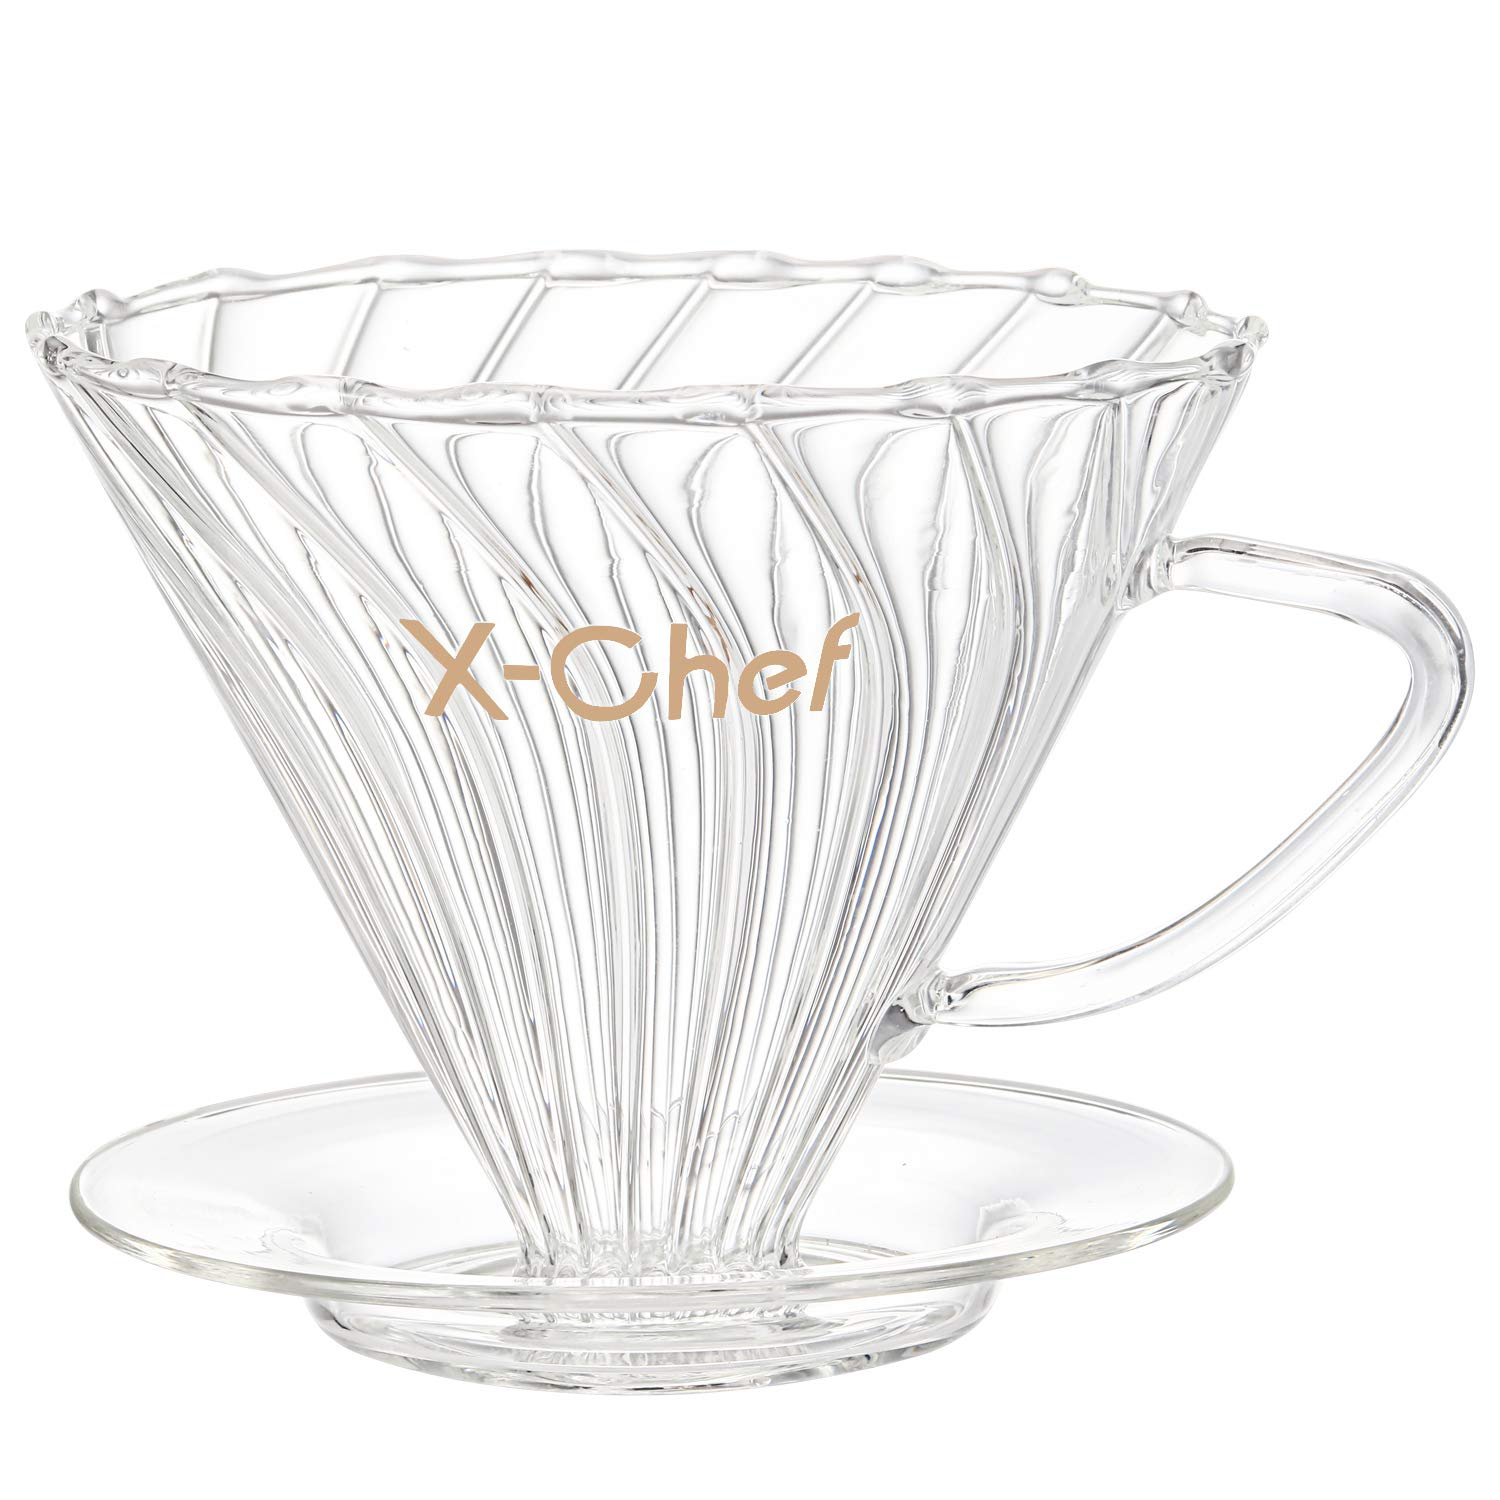 X-Chef Glass Coffee Dripper, Pour-Over Coffee Cone Filter Brewer, 1-2 Cups, White by X-Chef